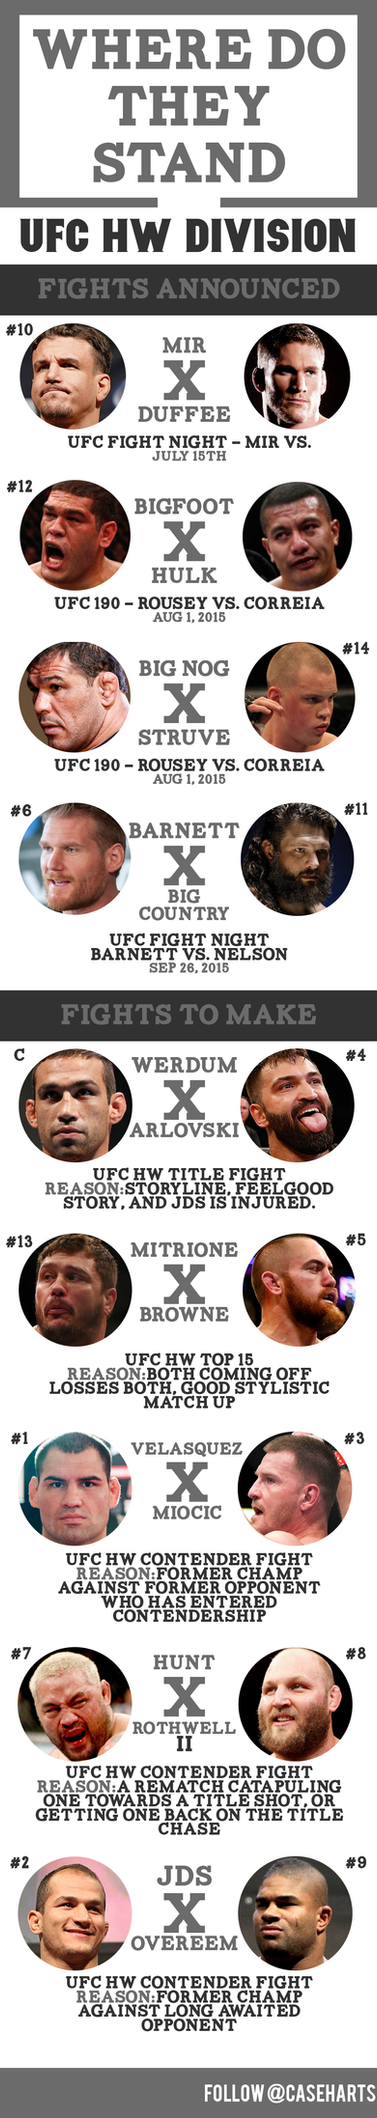 Where Do They Stand: UFC HW Division by caseharts